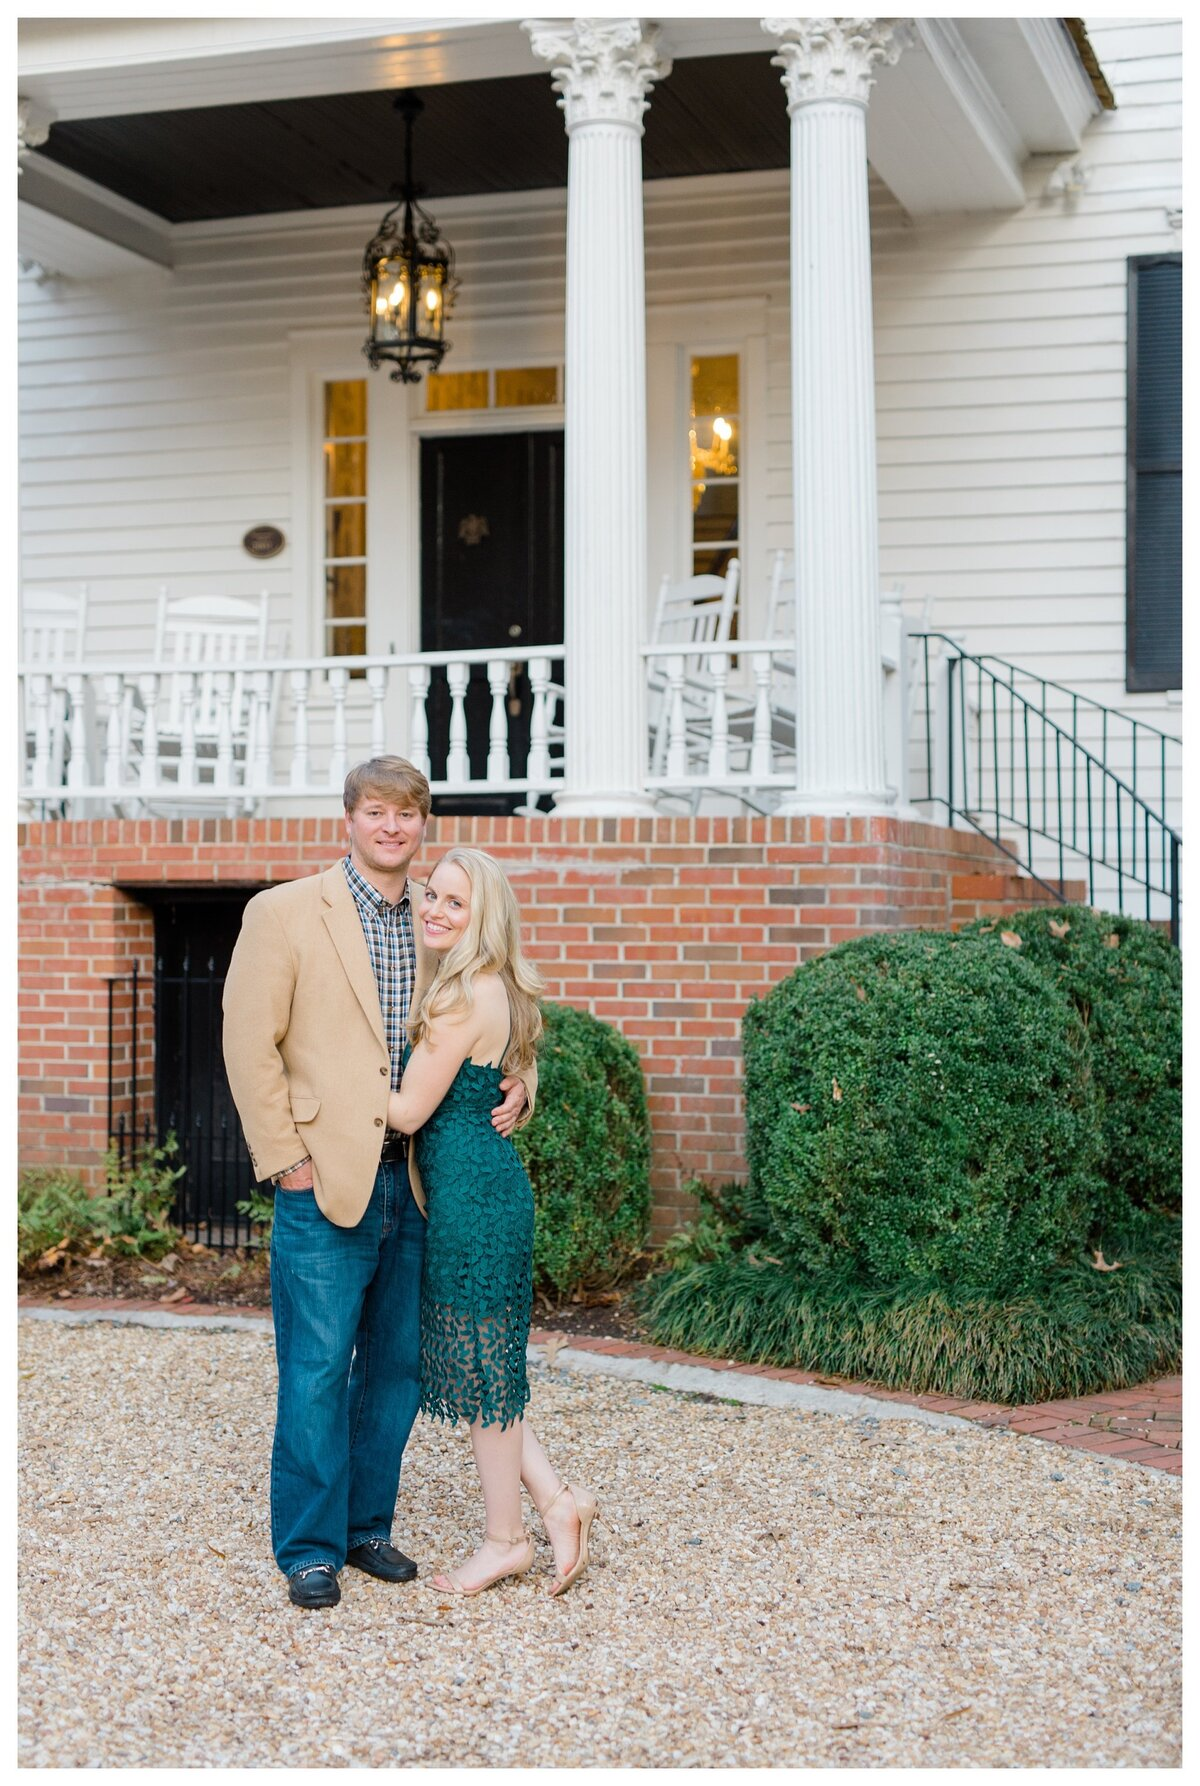 canady-engagements-atlanta-wedding-photographer-36